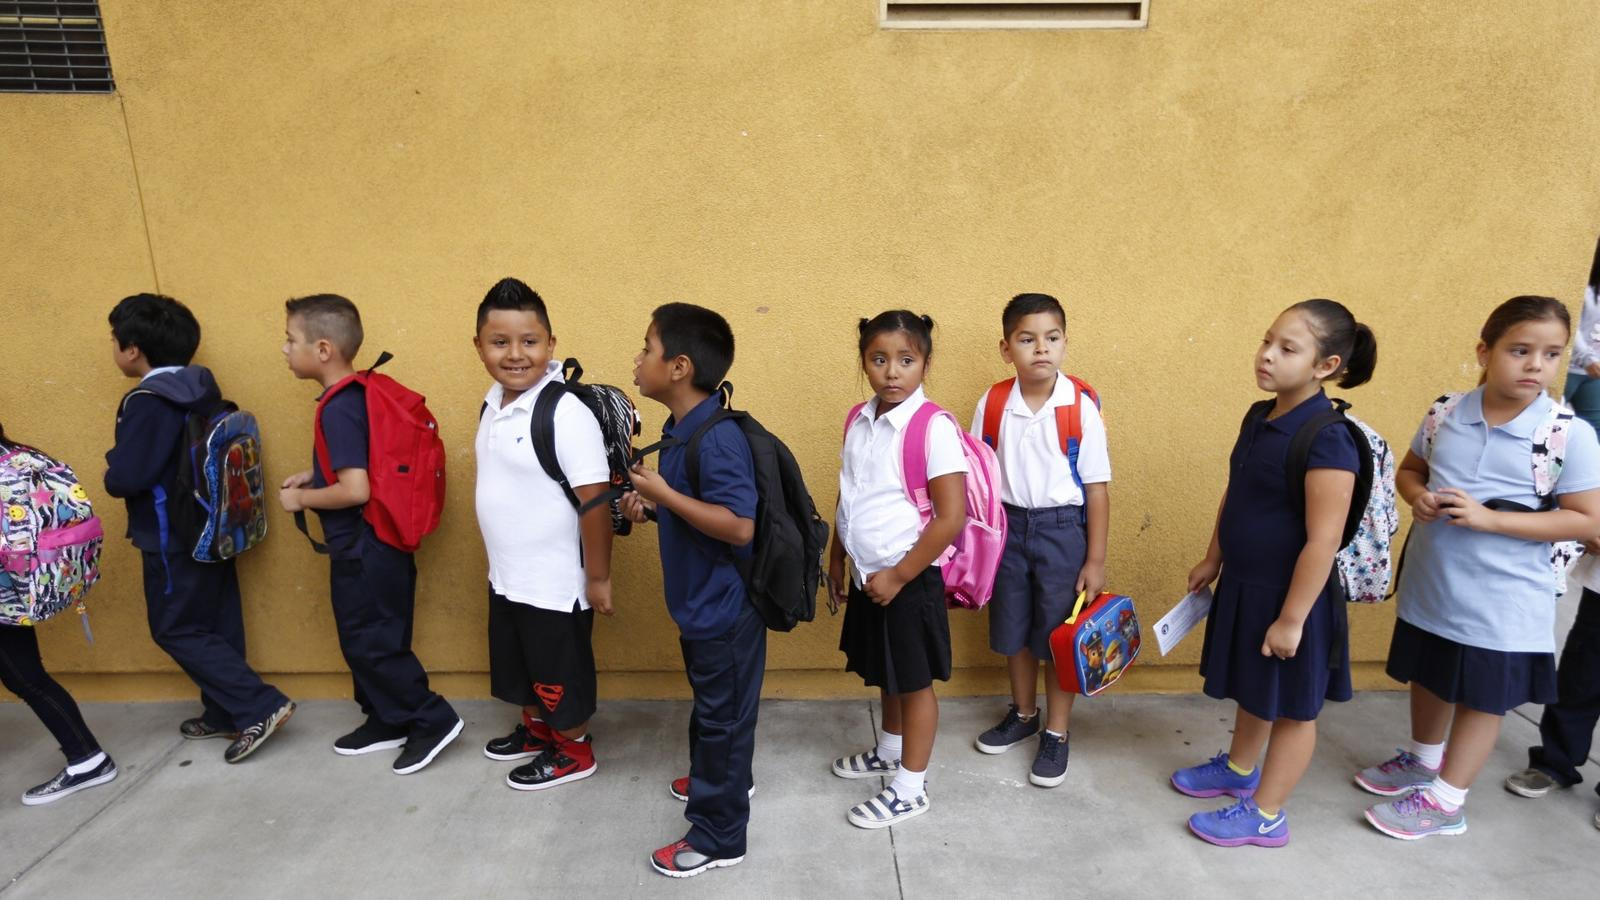 First-grade students at Vine Street Elementary School in Hollywood. (Al Seib / Los Angeles Times)